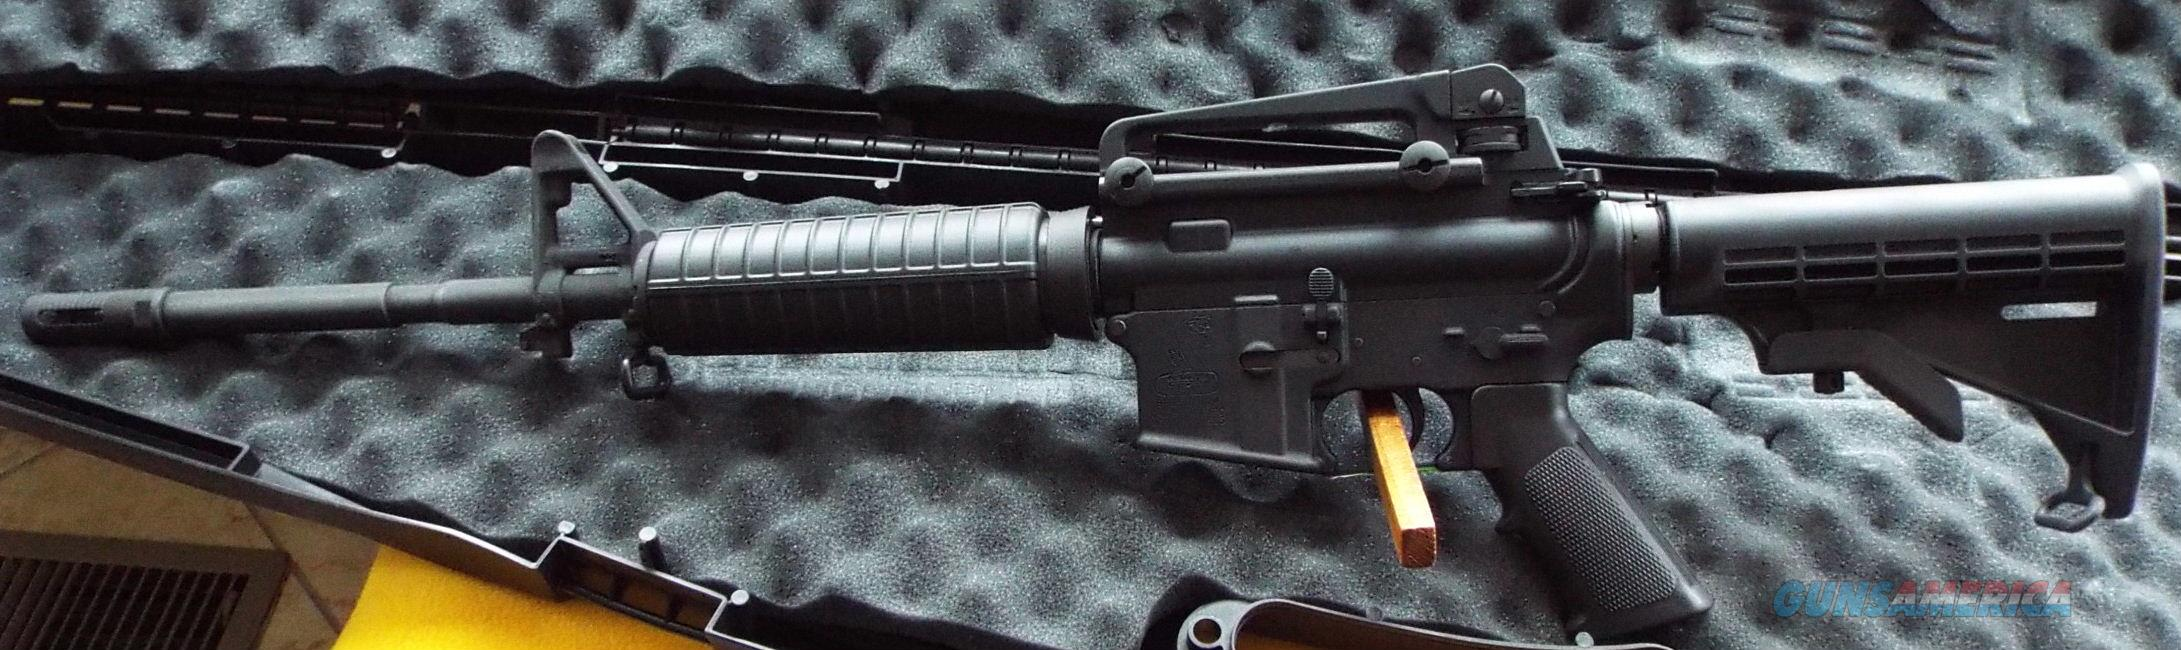 Bushmaster M4 A3 AR15 Carbine  6.8 SPC cal.  New!     LAYAWAY OPTION  Guns > Rifles > Bushmaster Rifles > Complete Rifles